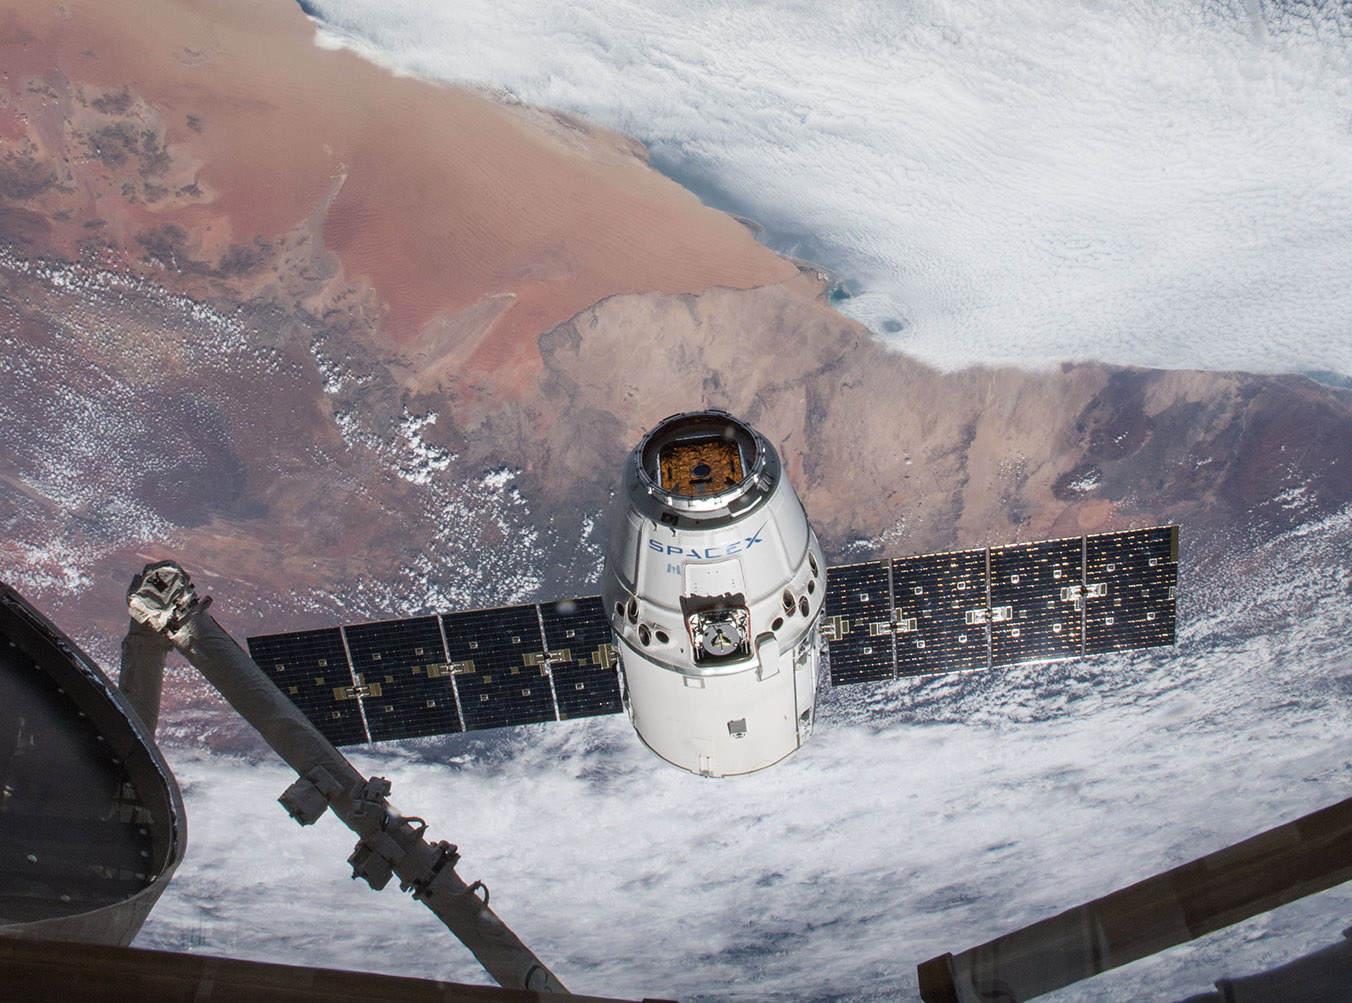 SpaceX 14 Dragon approaches ISS RickyArnold